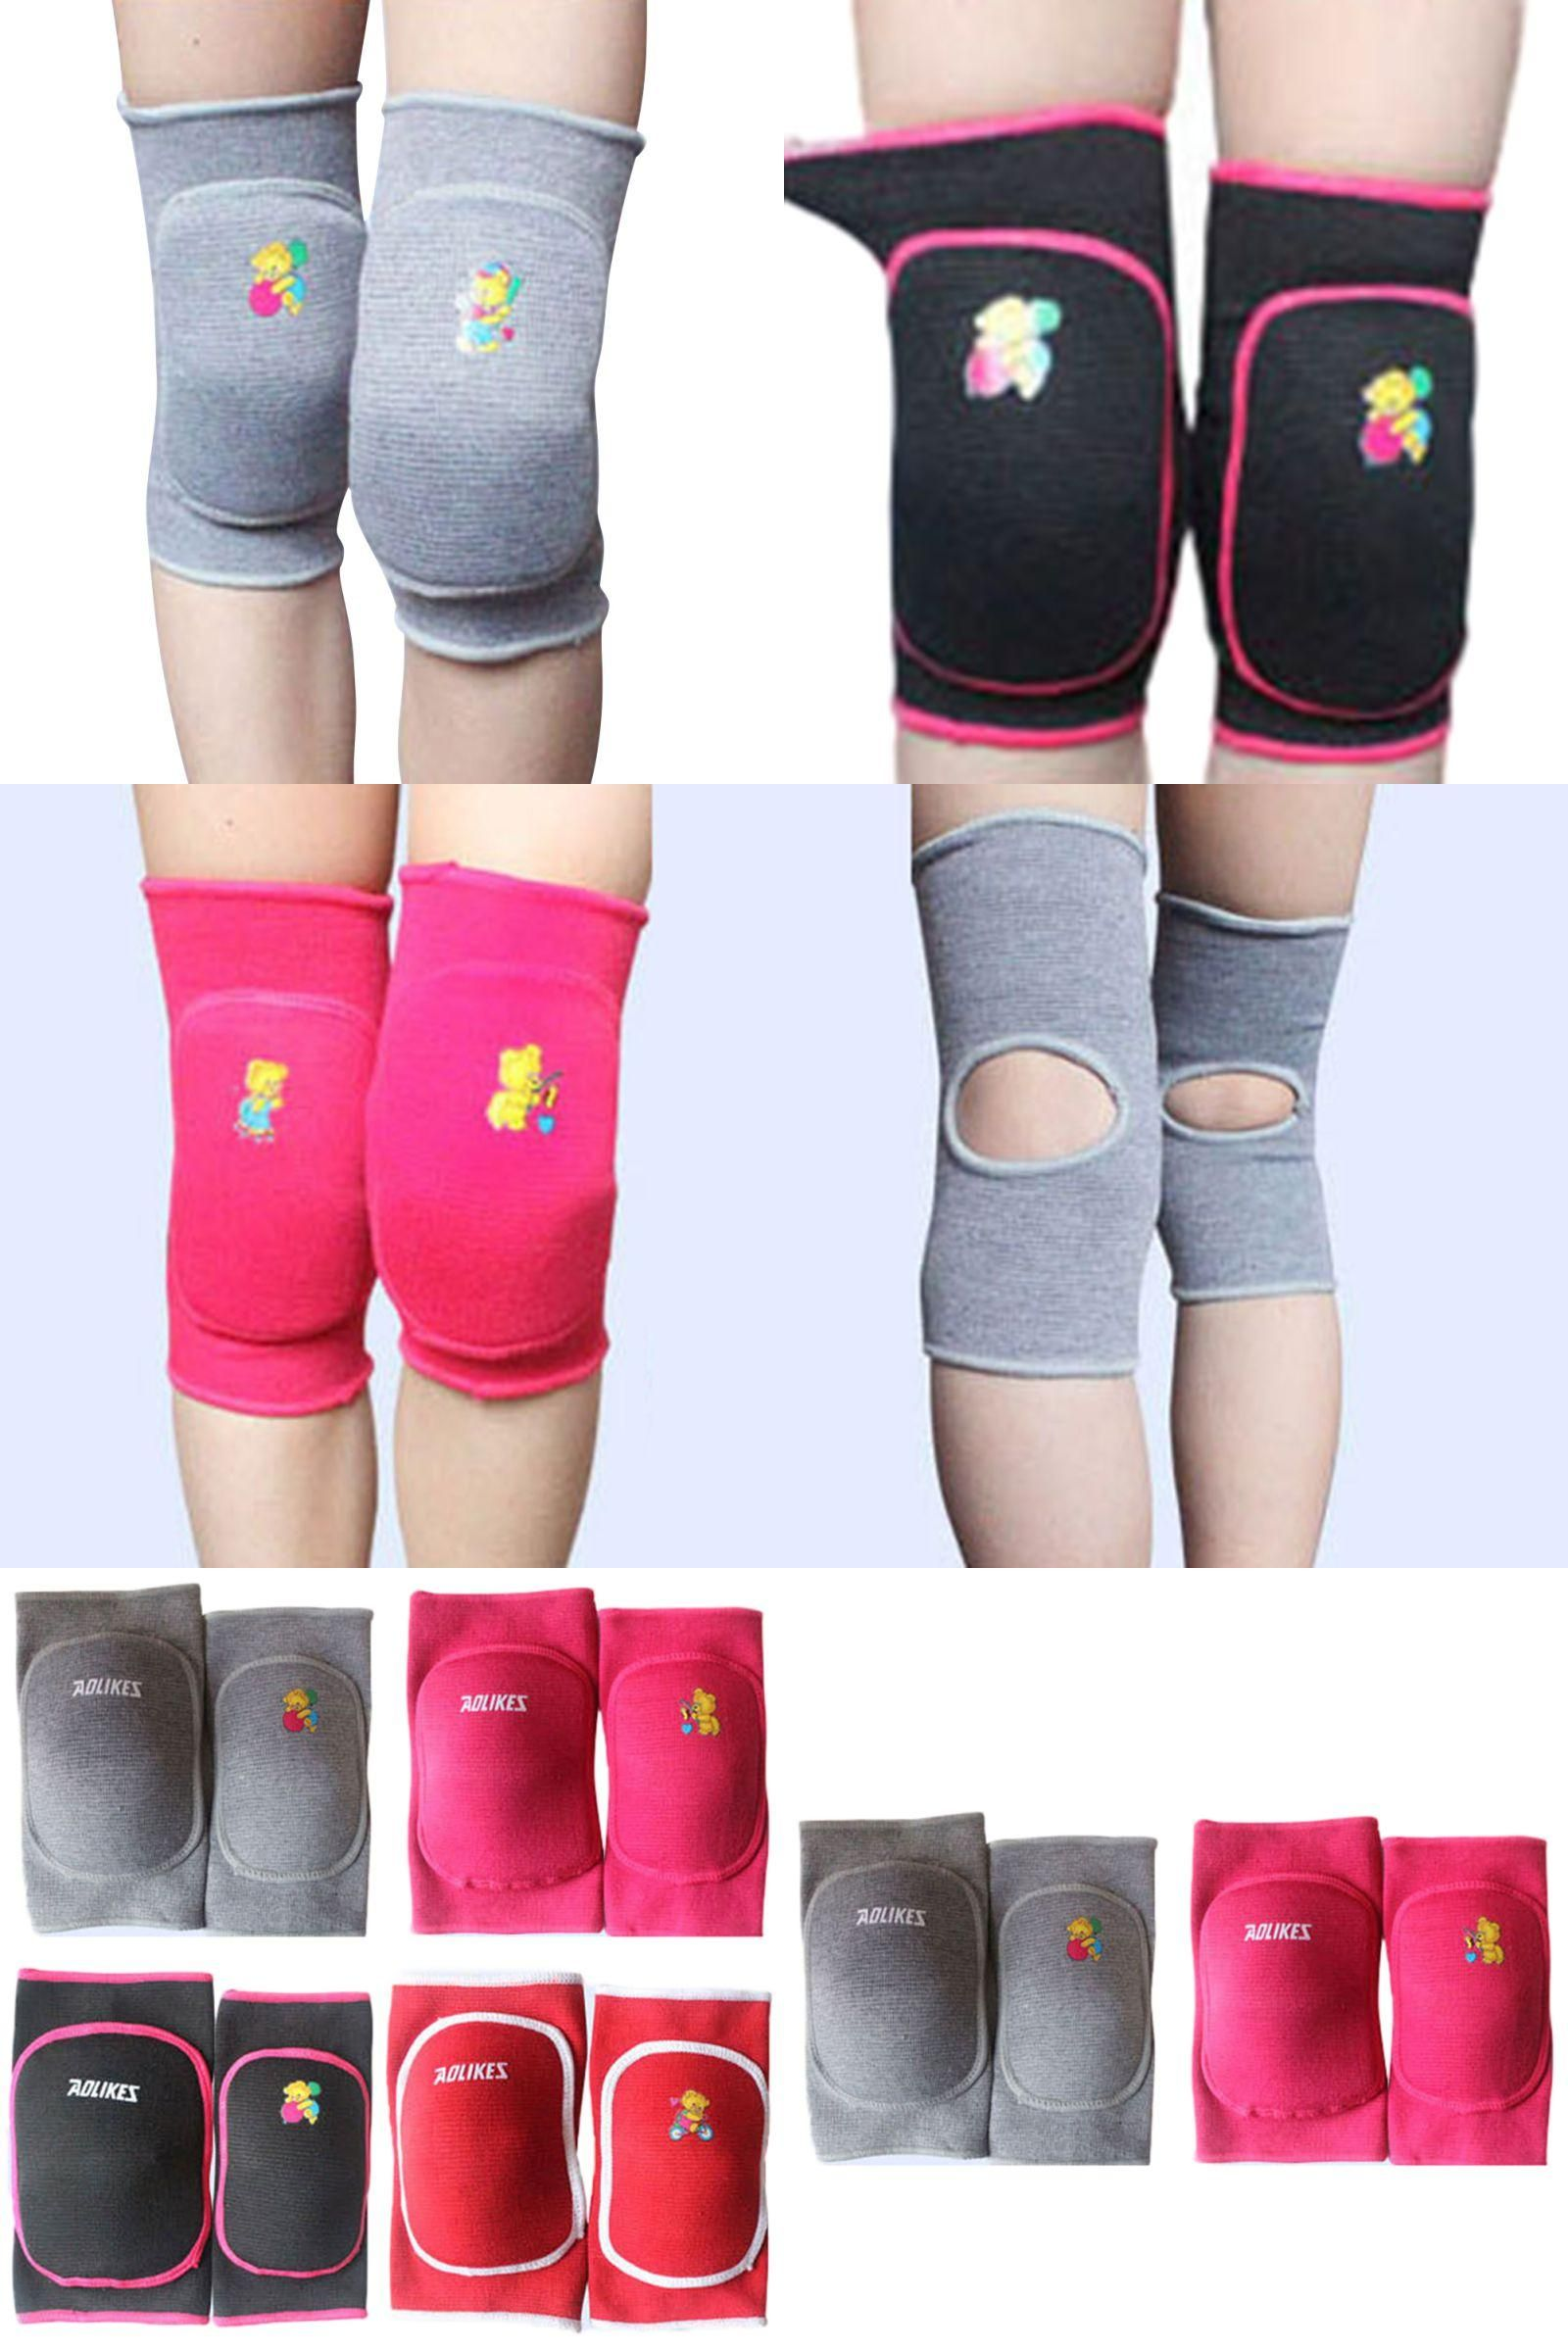 Visit to Buy] Child Boy Girl Kids Knee Pad Dance Training Games